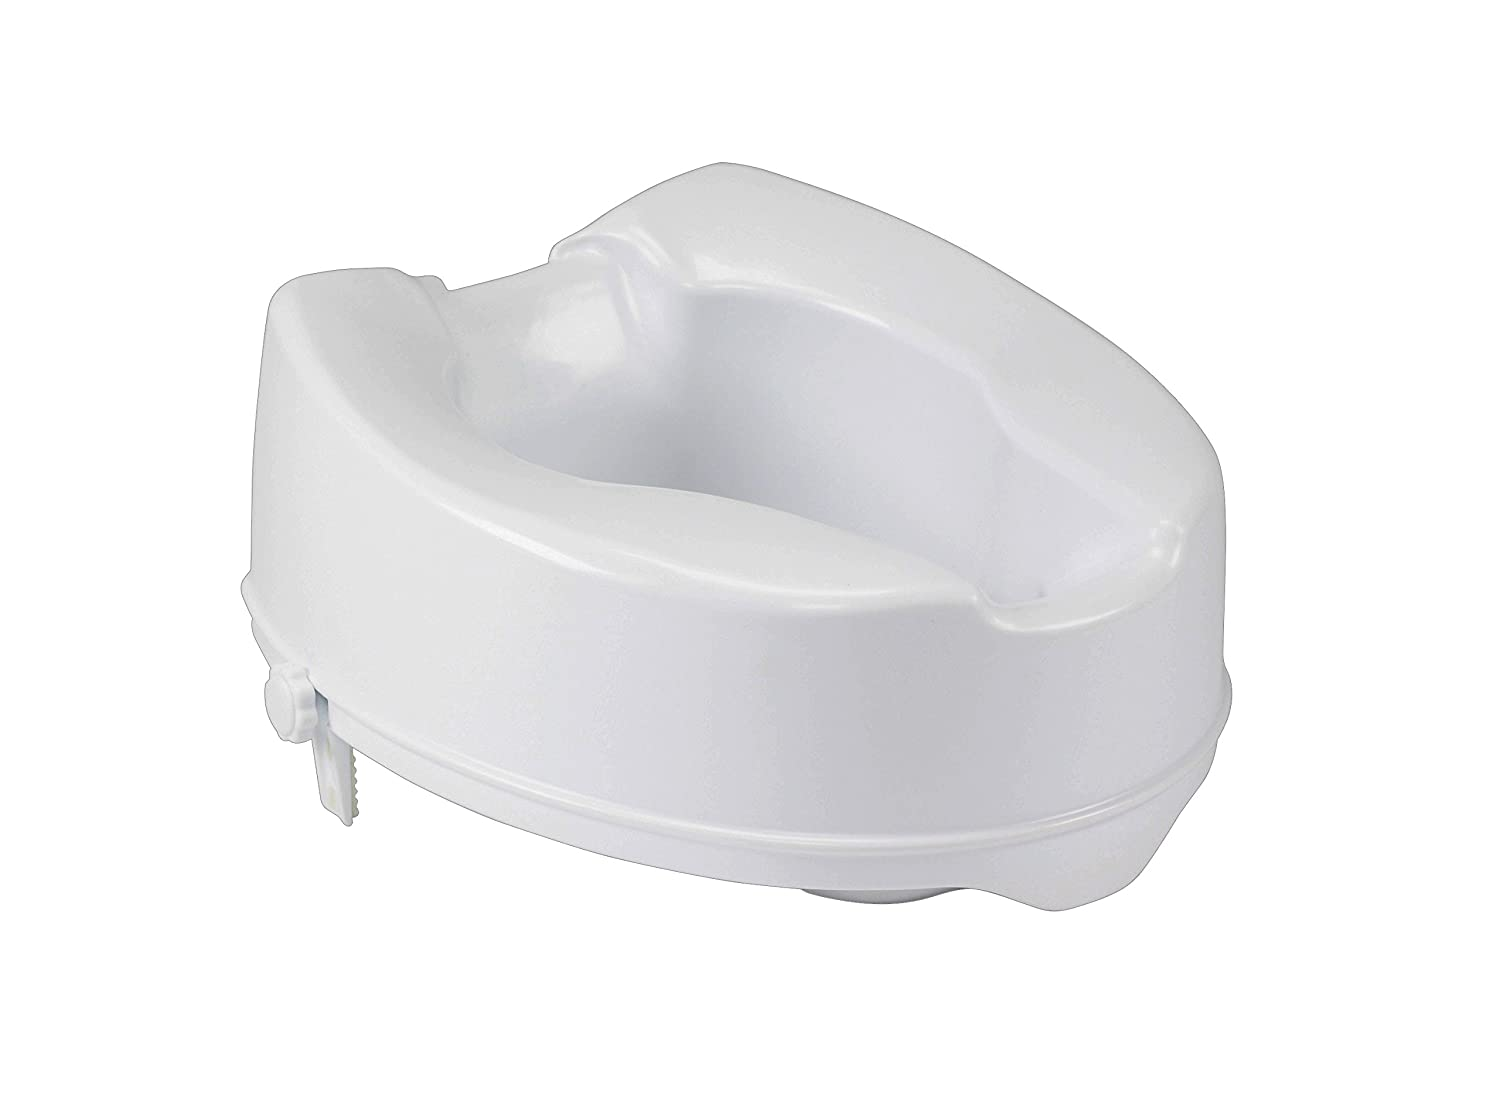 Drive Medical Raised Toilet Seat with Lock, Standard Seat, 2 2 12062 12062B